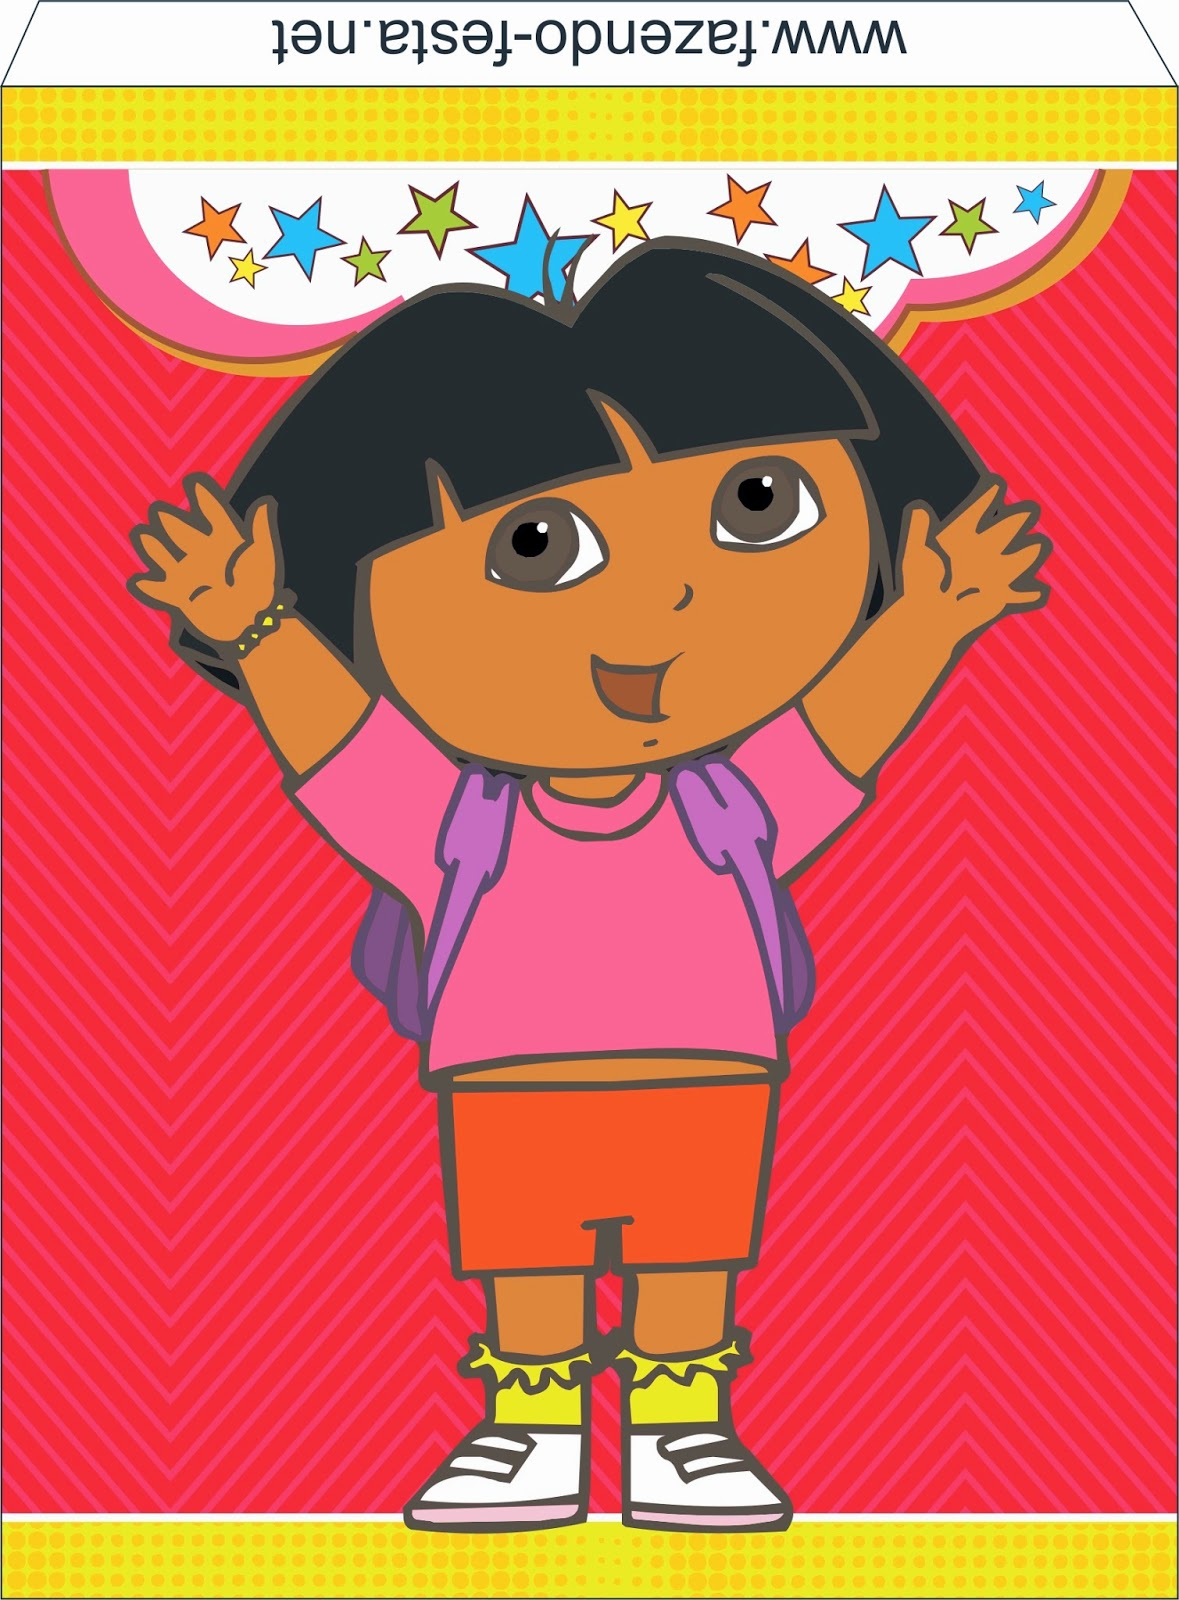 Dora the Explorer free printable invitation, card, bunting or candy bar label.